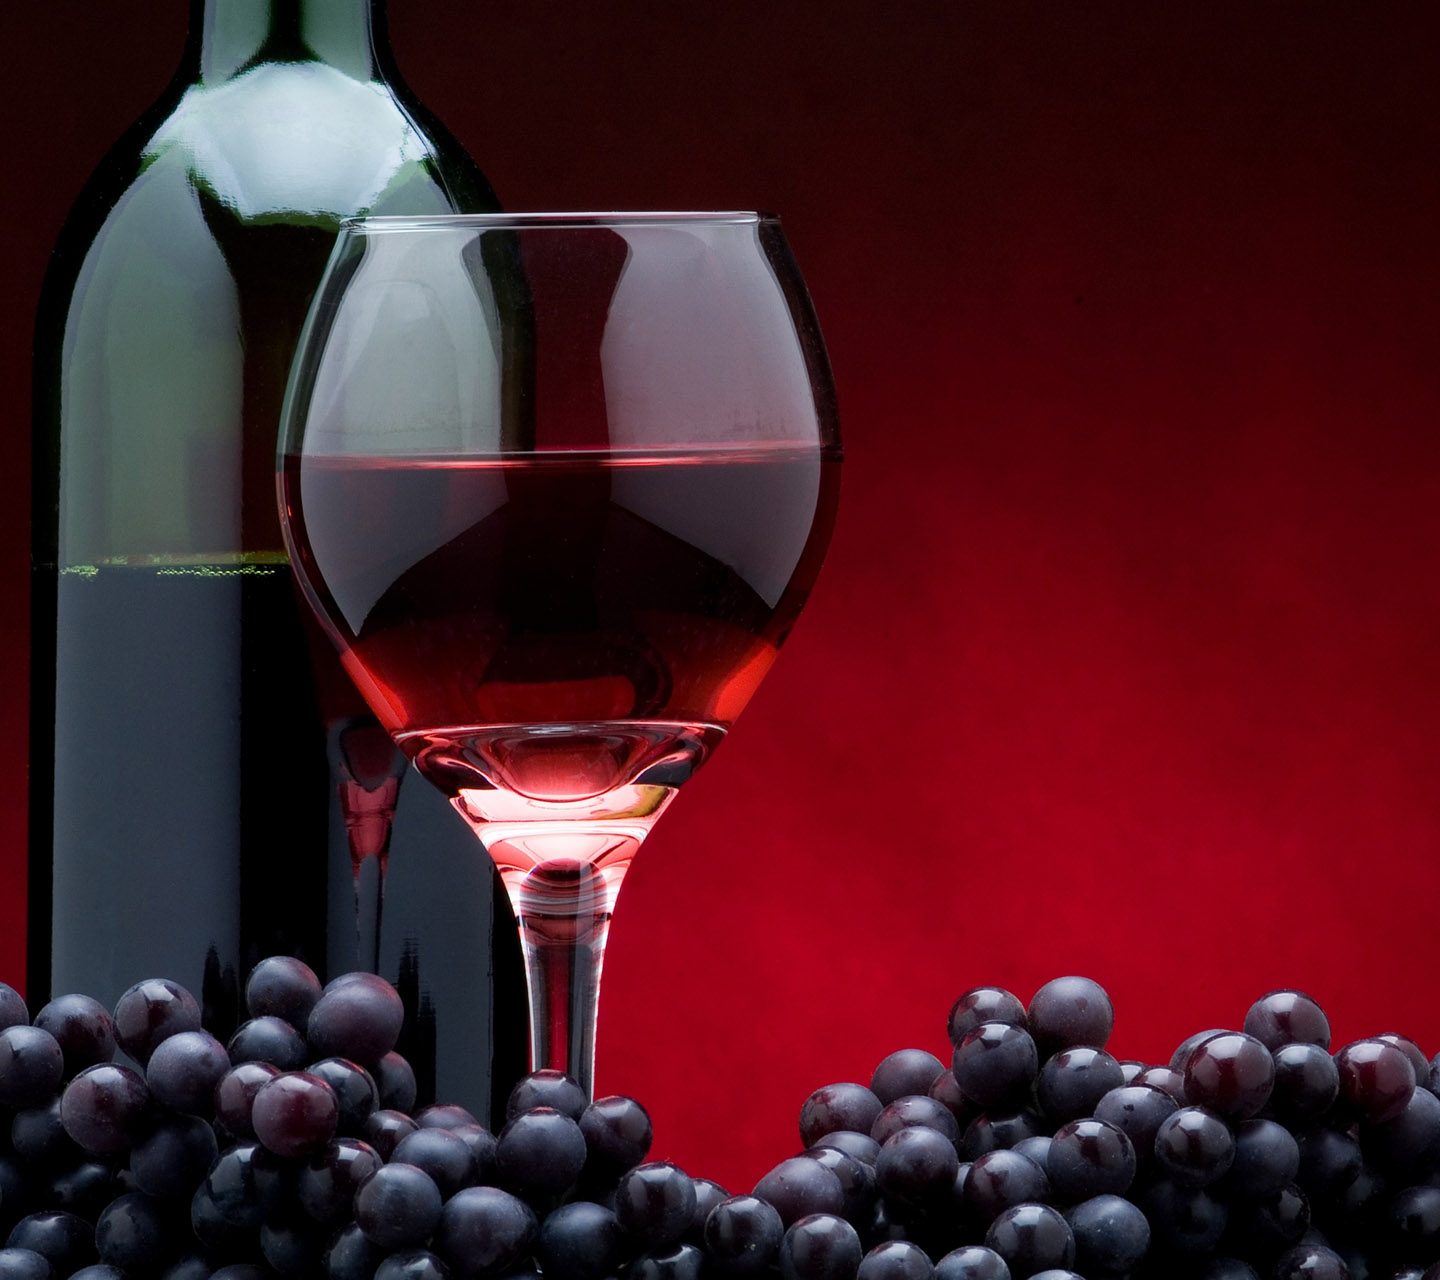 wine samsung galaxy s3 wallpaper - hd wallpapers - 9to5wallpapers